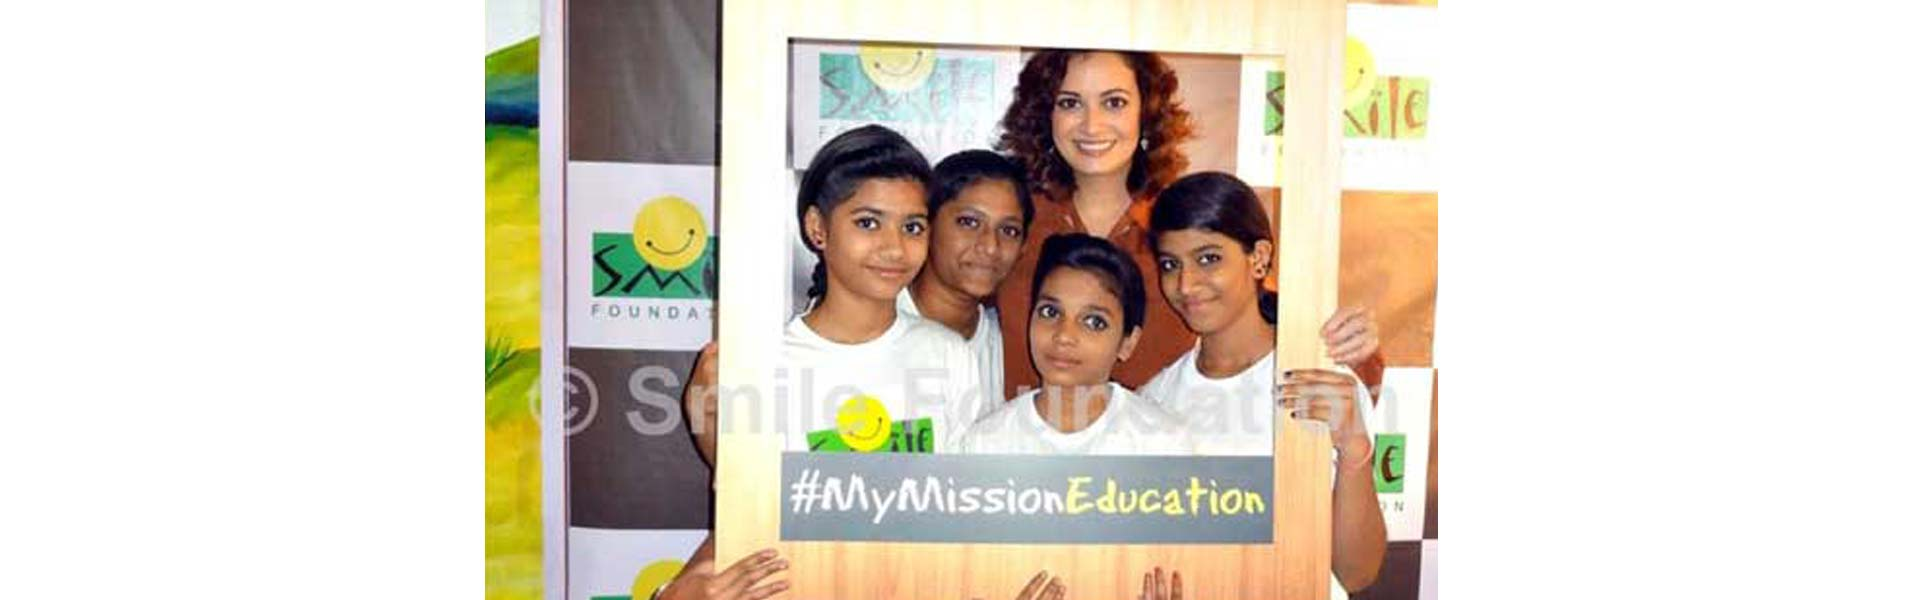 Dia Mirza Joins Mission Education